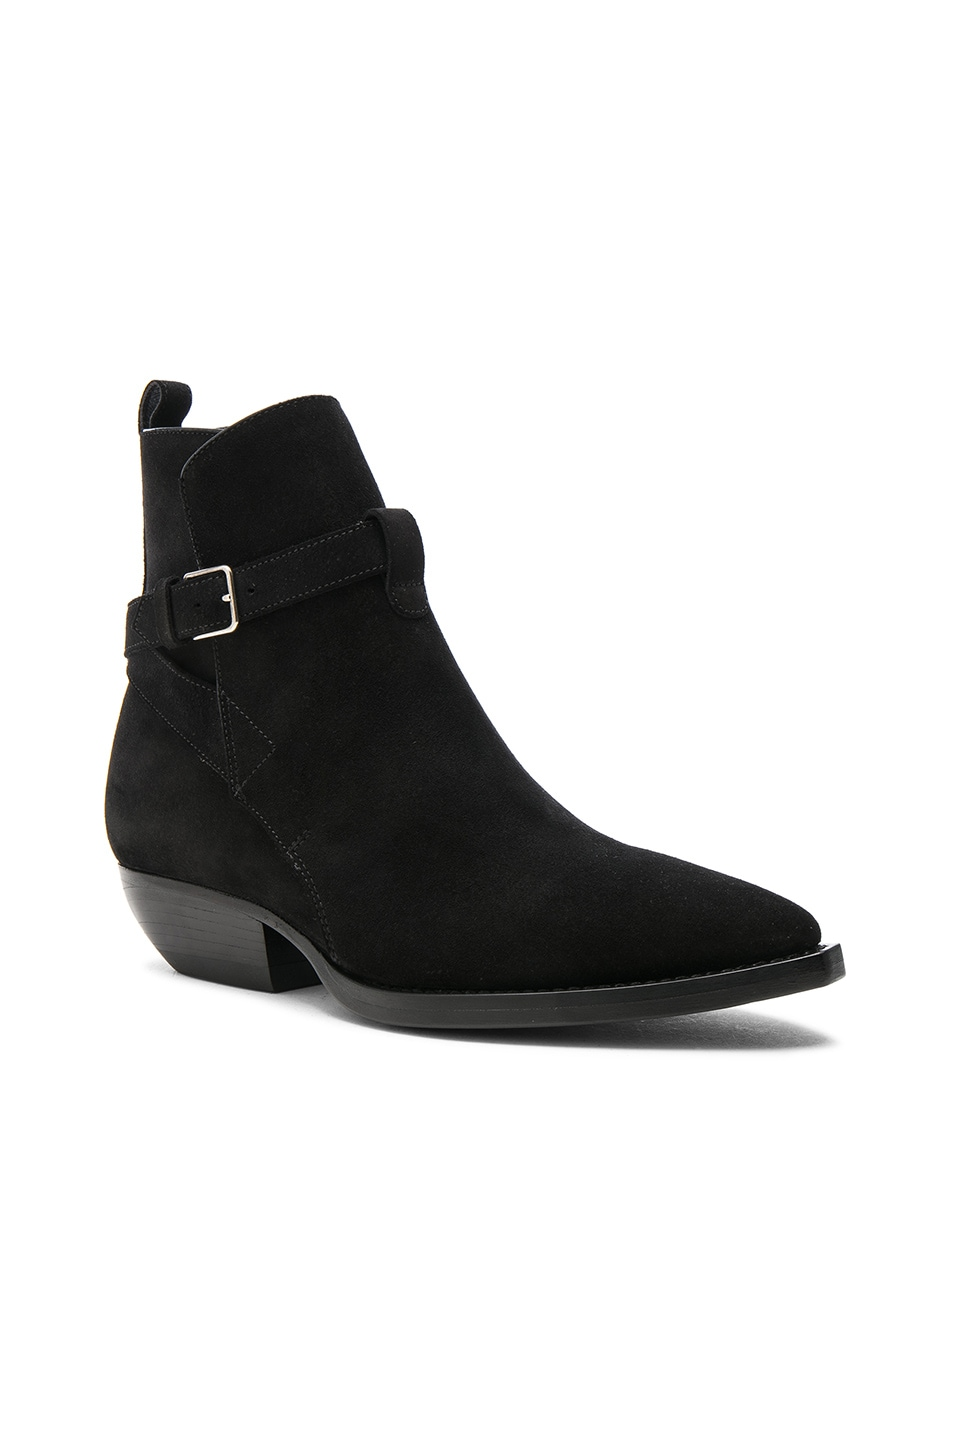 Saint Laurent Suede Theo Jodhpur Boots in .